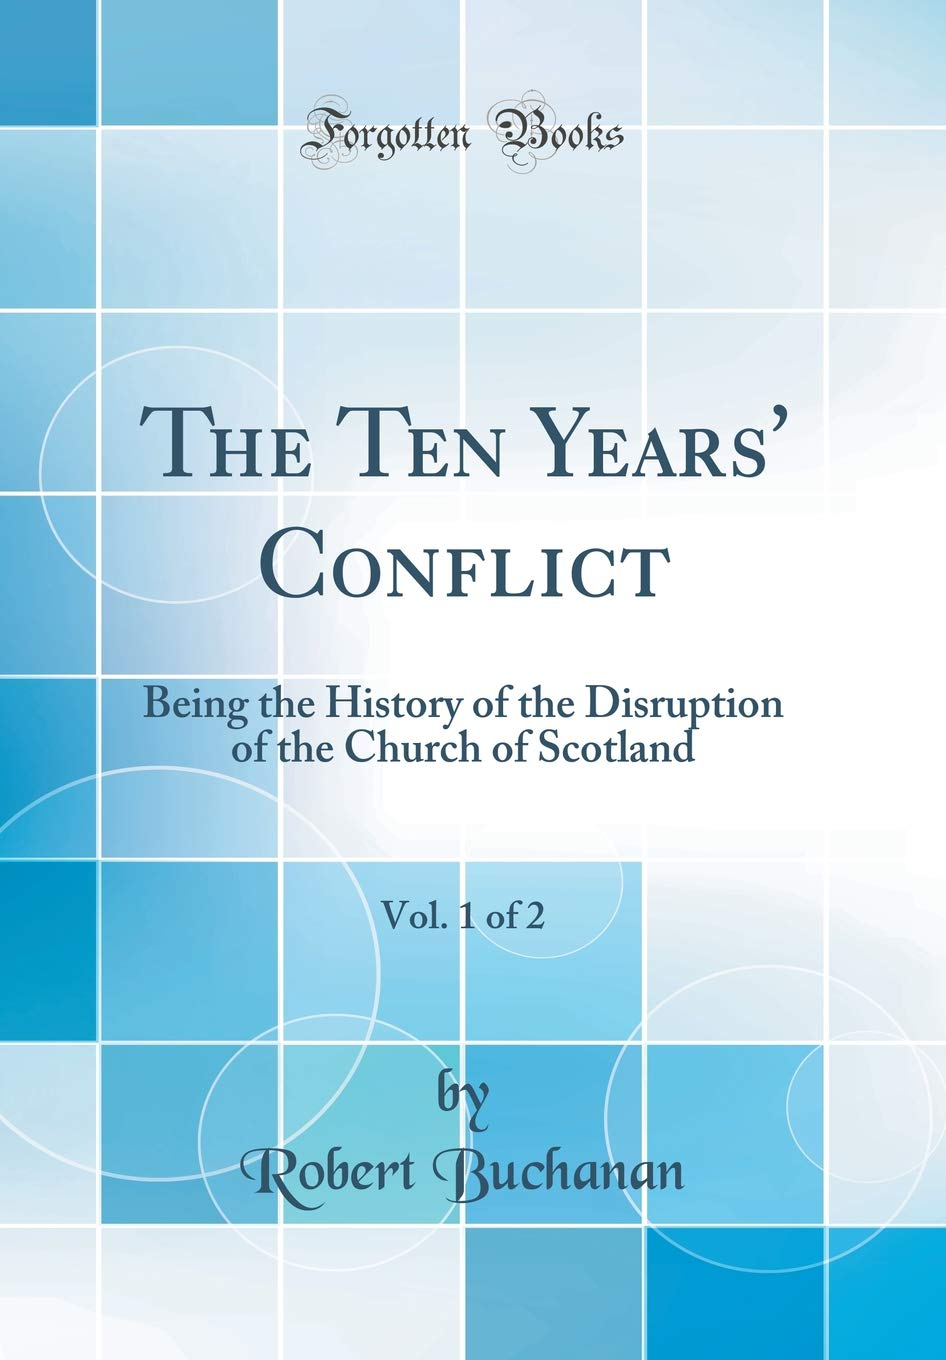 The Ten Years' Conflict, Vol. 1 of 2: Being the History of the Disruption of the Church of Scotland (Classic Reprint) PDF